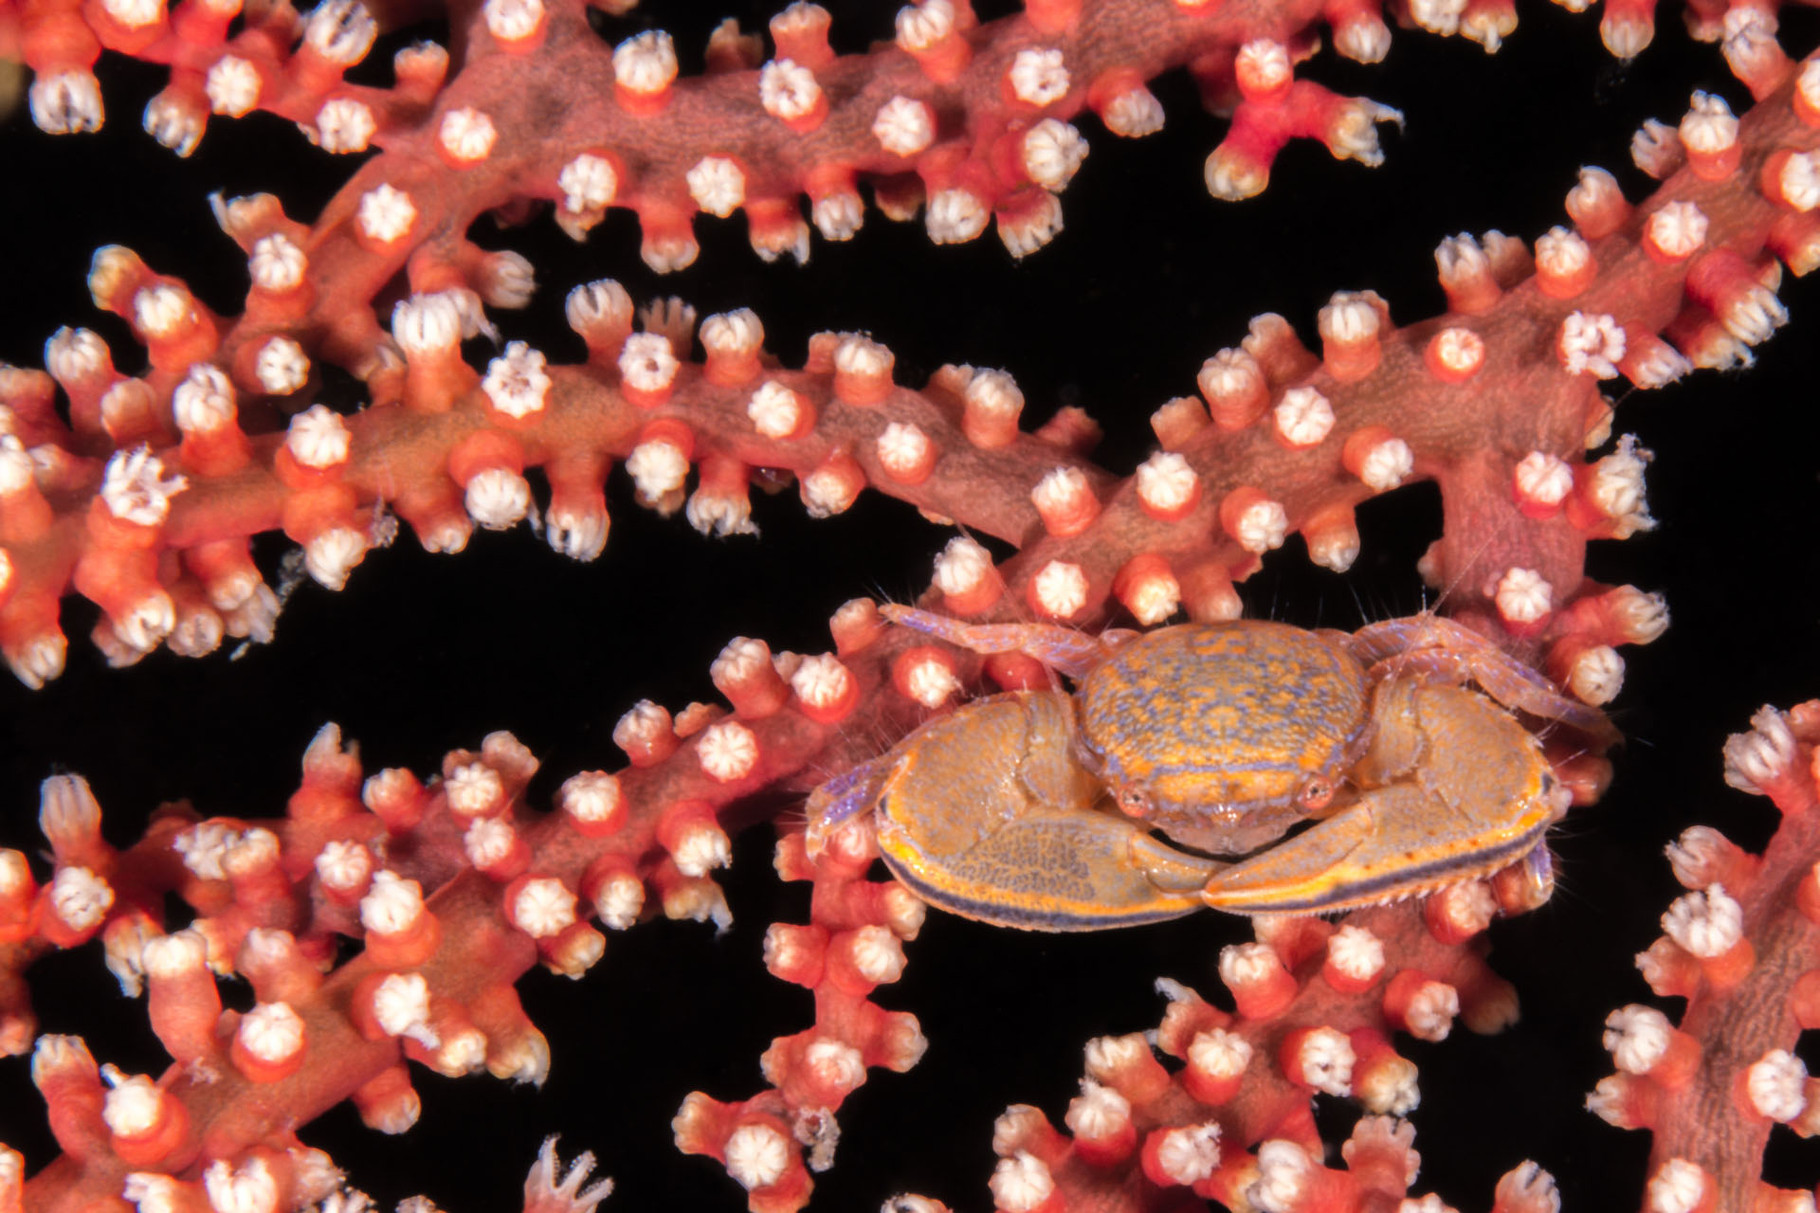 Tiny crab on coral